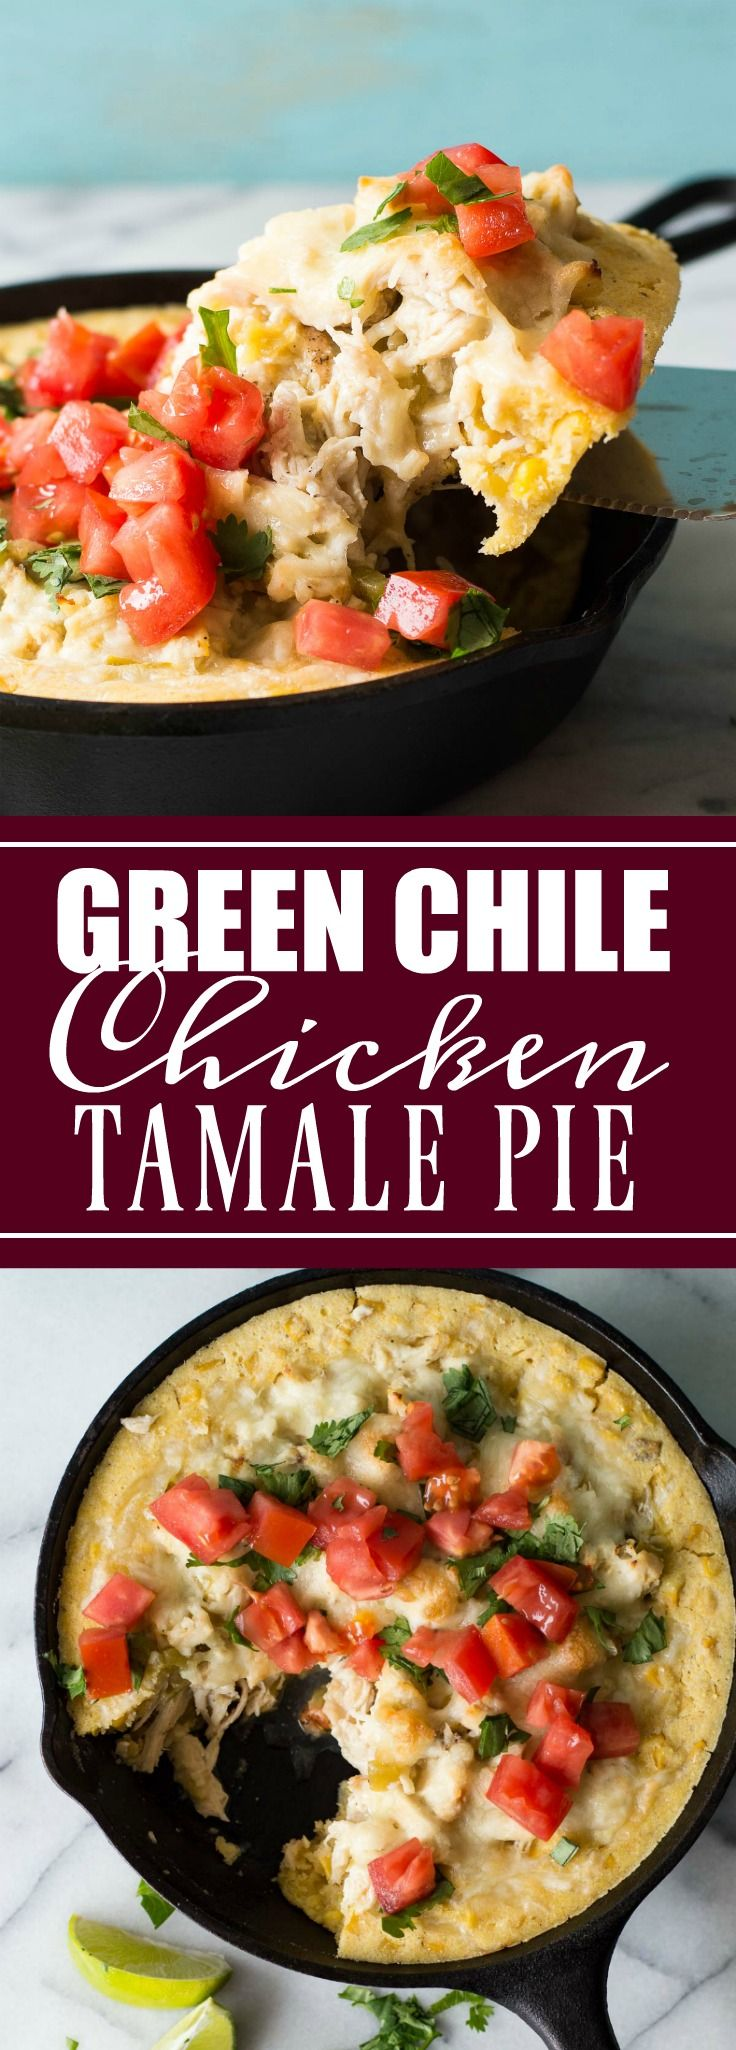 Green Chile Chicken Tamale Pie (Mexican Chicken Spaghetti)